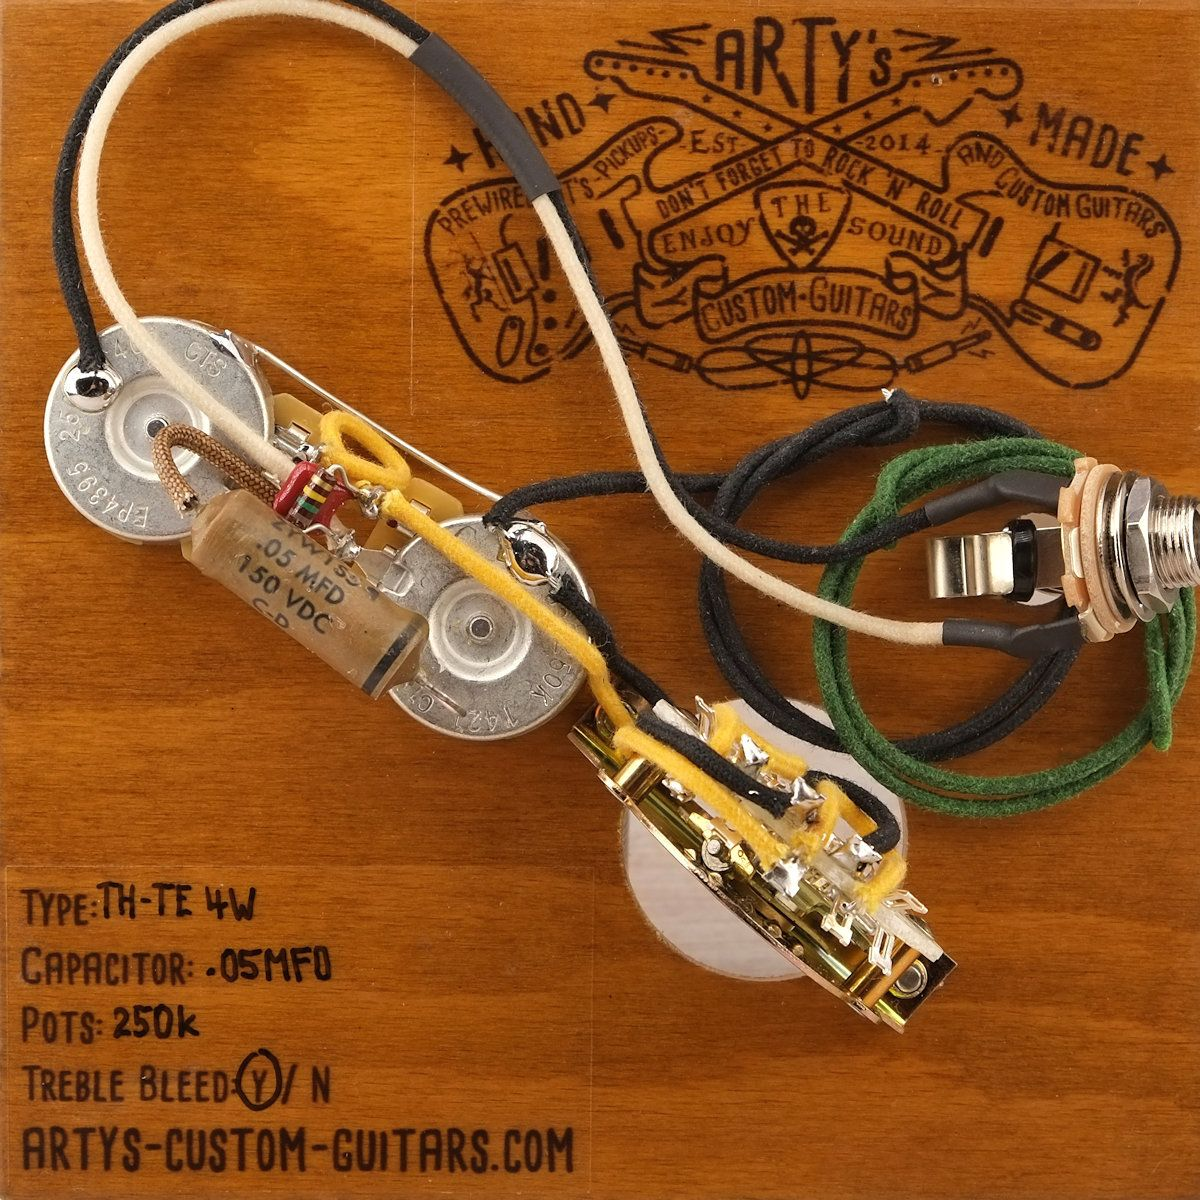 small resolution of arty s custom guitars 4 way premium vintage pre wired prewired kit wiring assembly harness arty